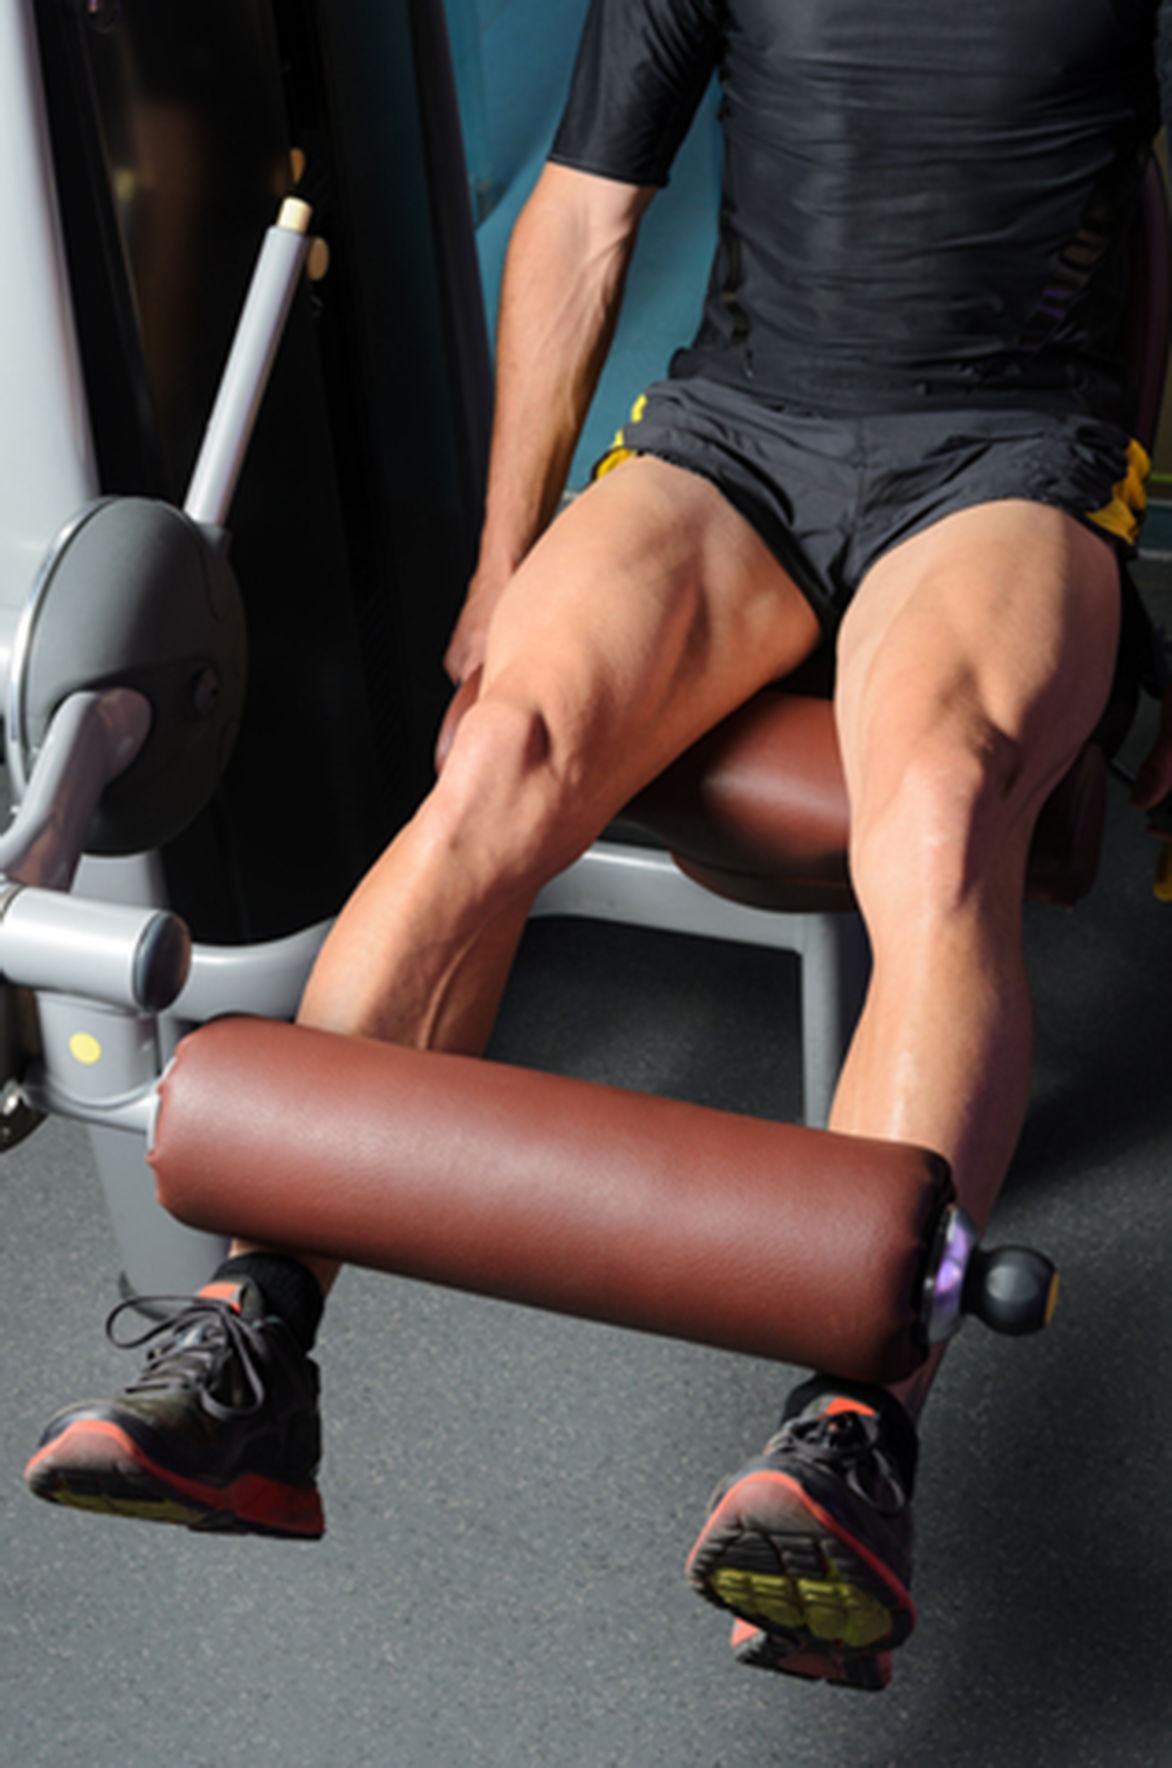 Thigh muscles